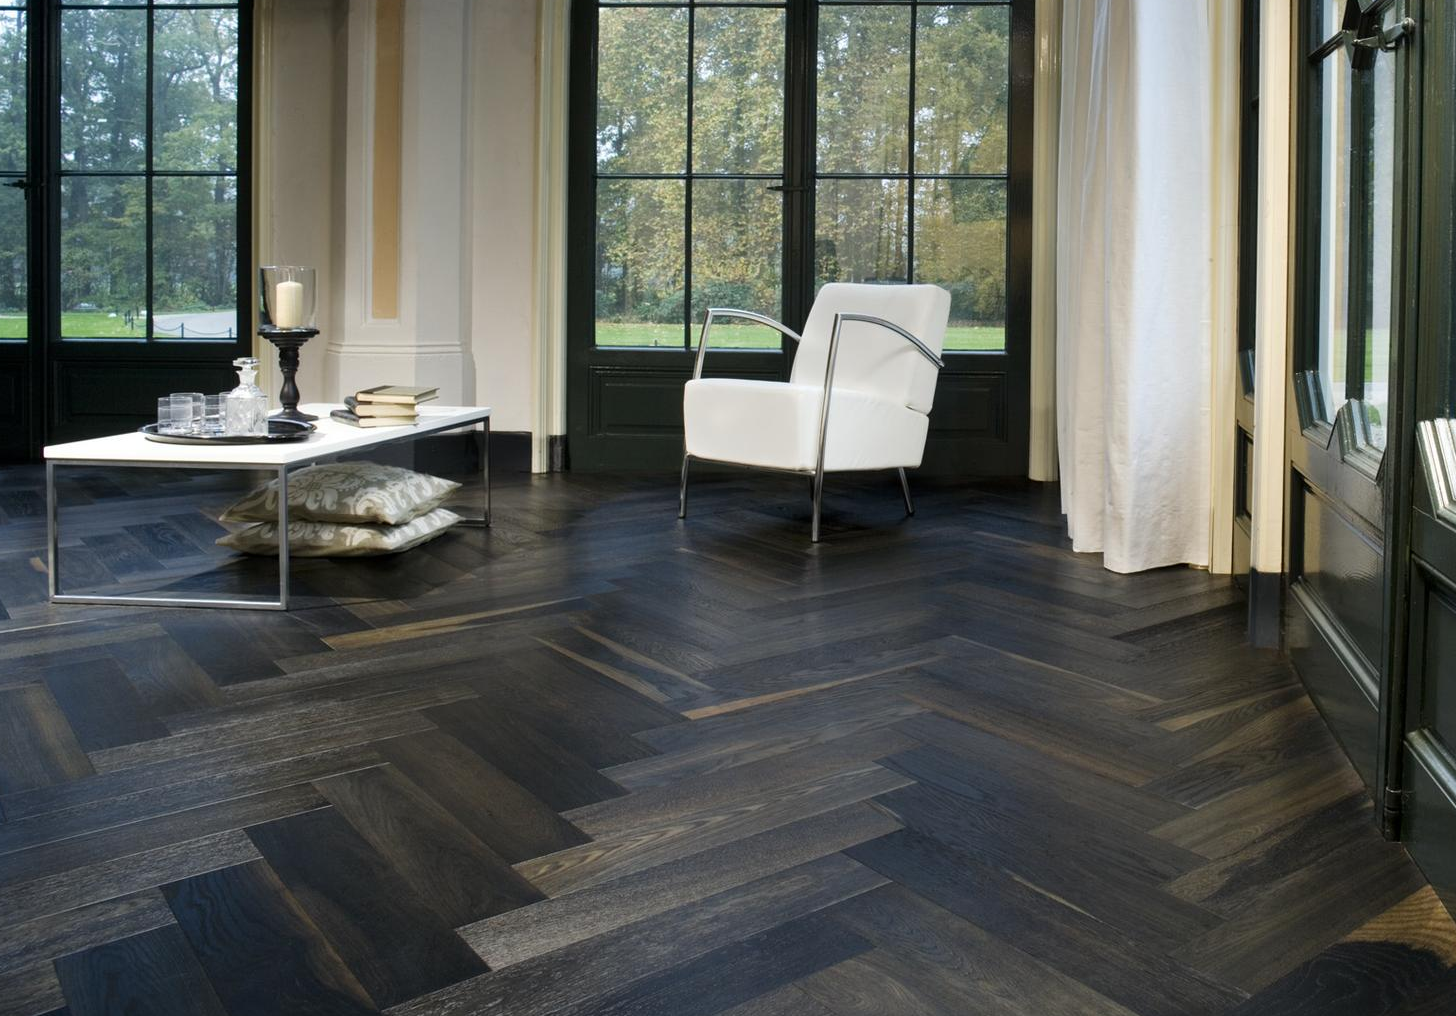 Incredible parquet floors homedesignboard for Hardwood floor designs